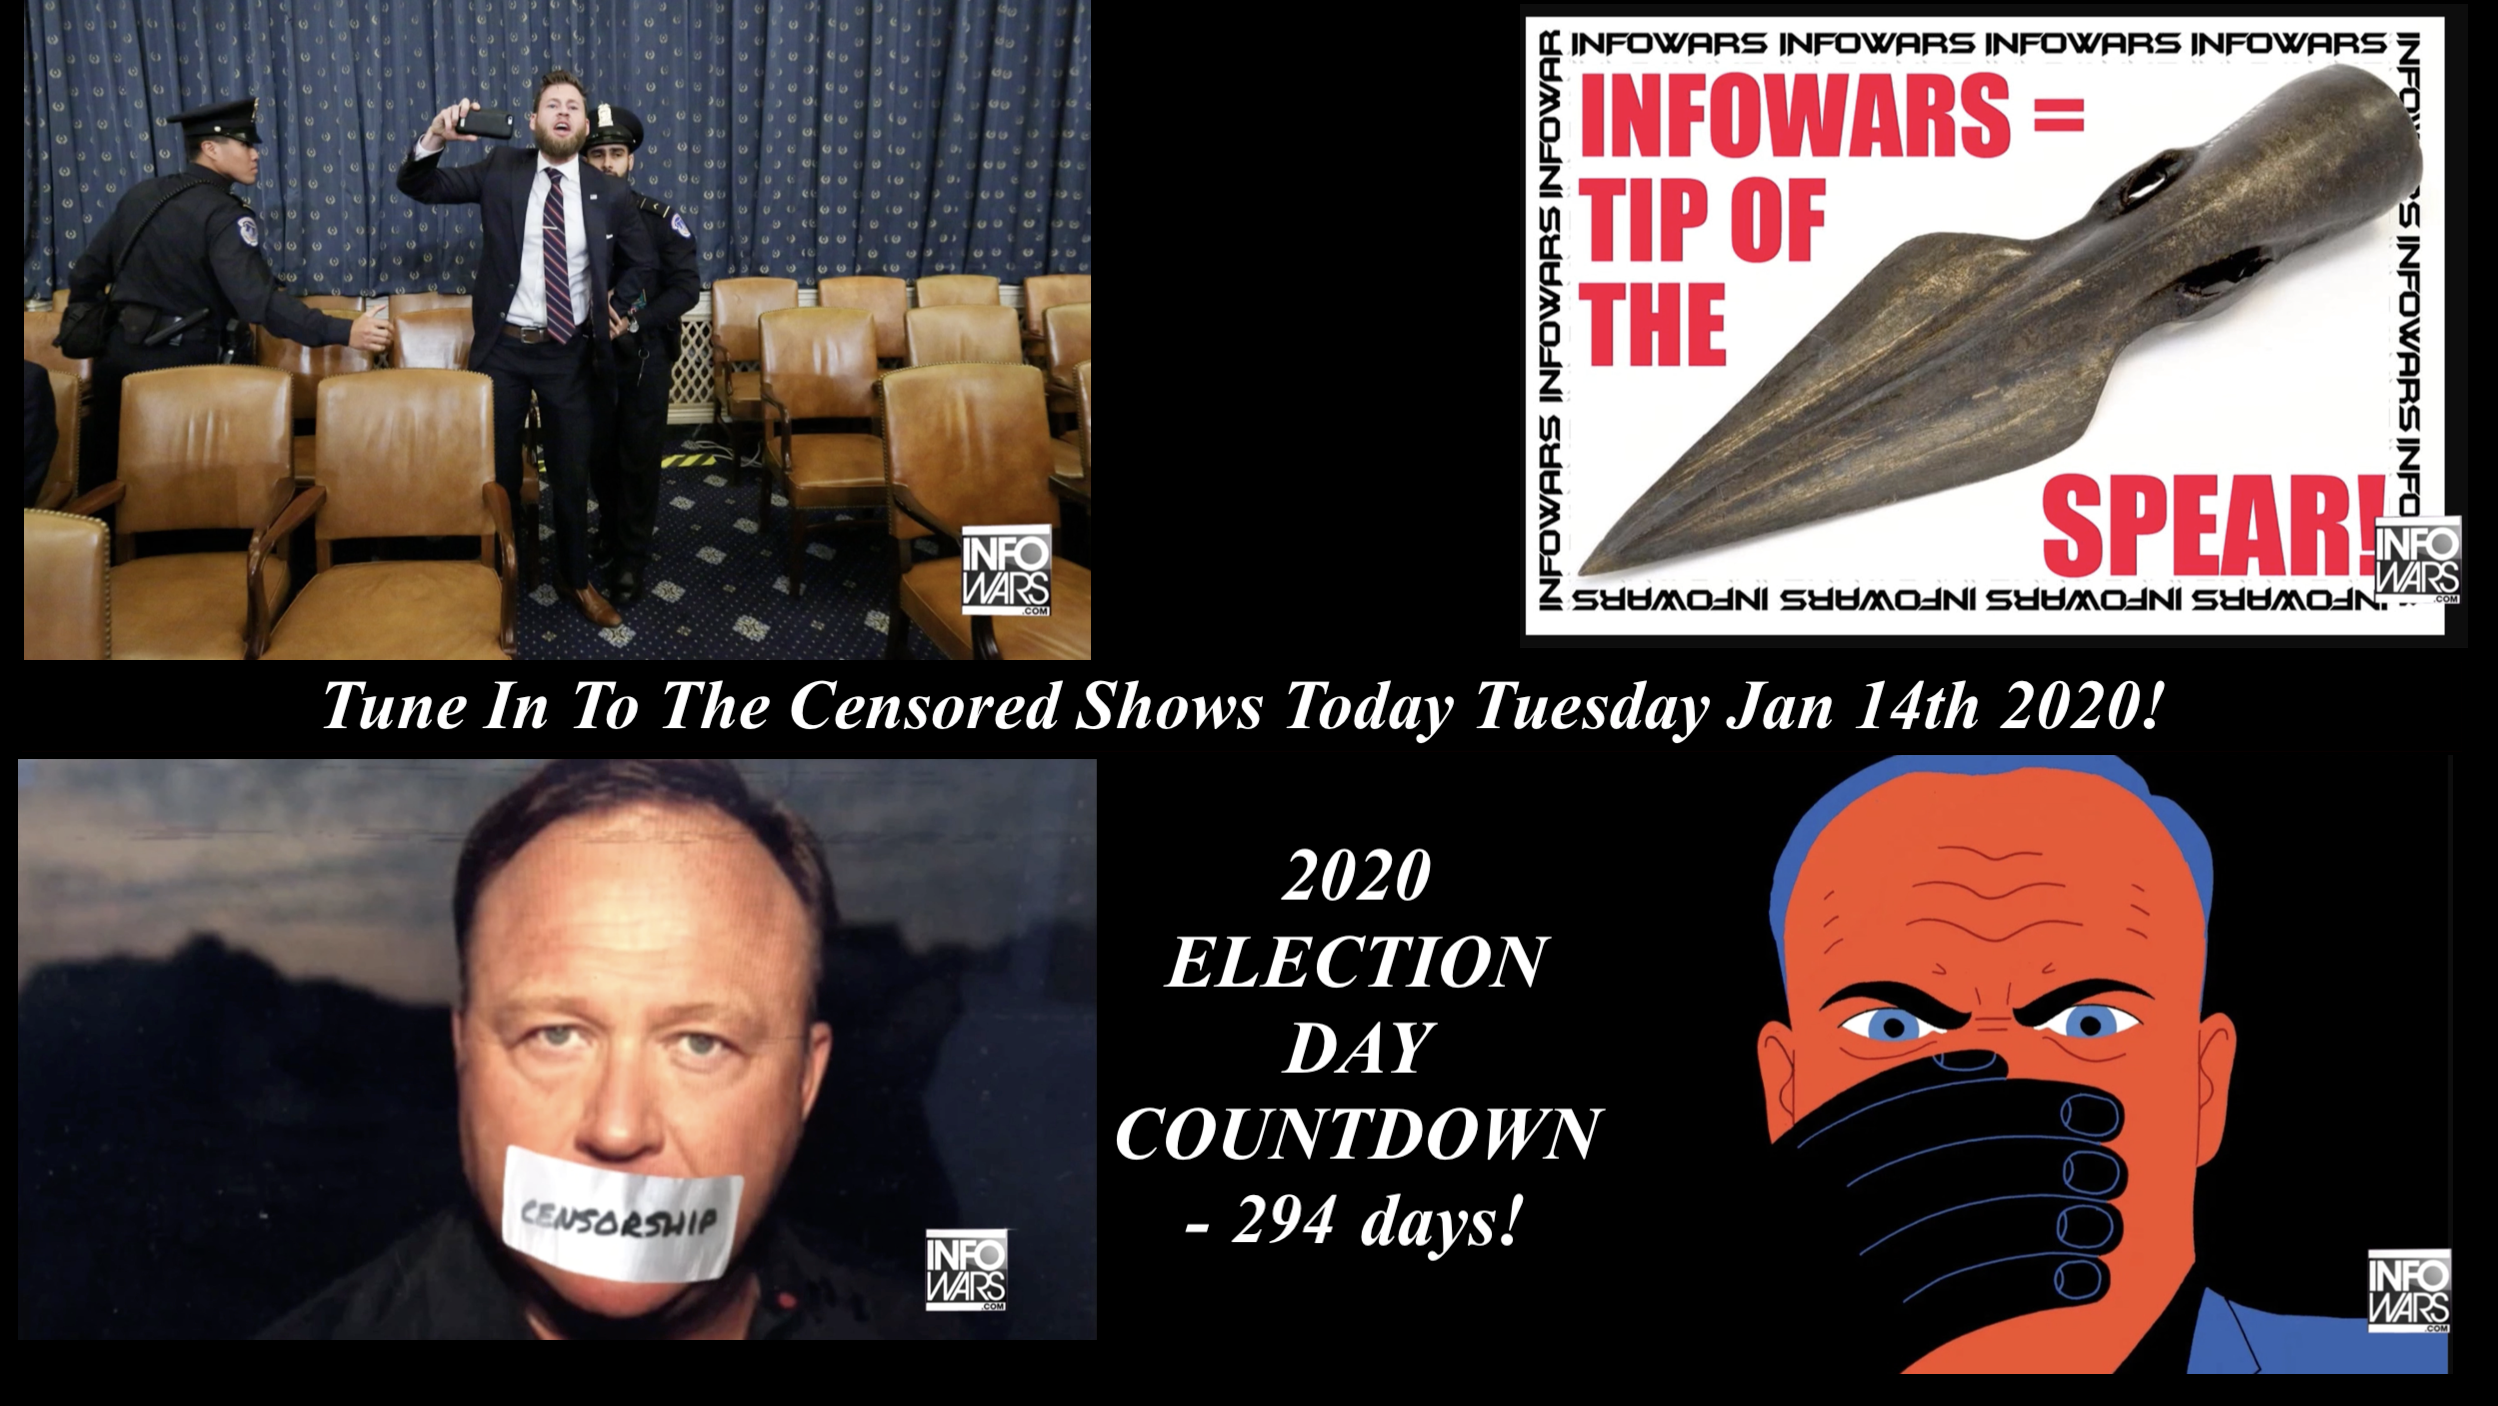 Infowars censored shows 1 14 2020 copy